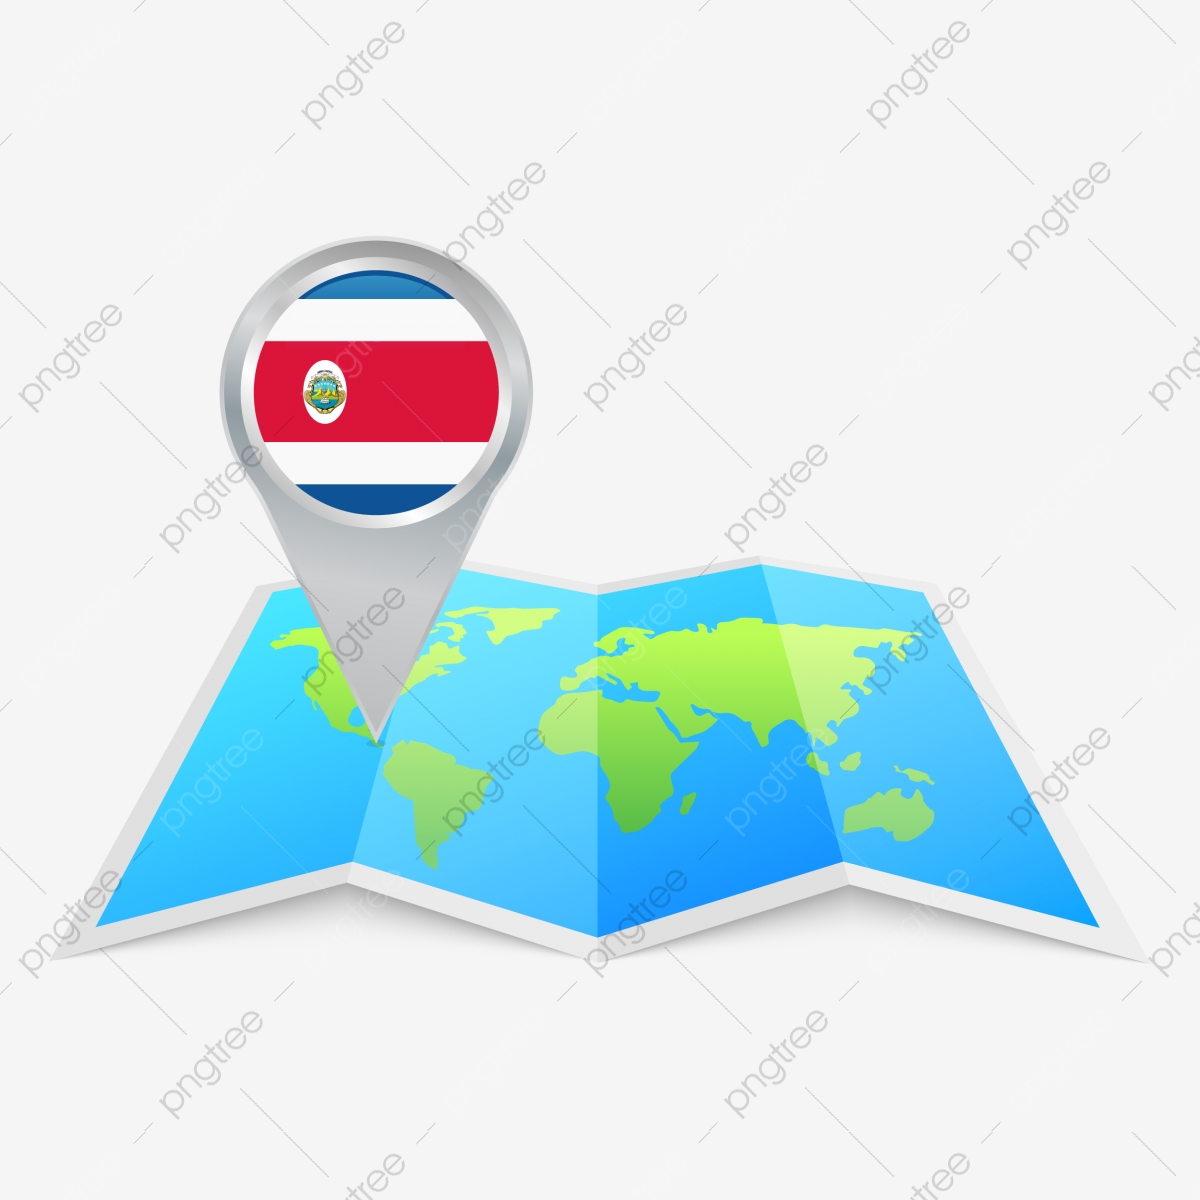 Image of: Round Pin Icon Of Costa Rica On The Folded World Map Costa Rica Flag Of Costa Rica Round Pin Png And Vector With Transparent Background For Free Download